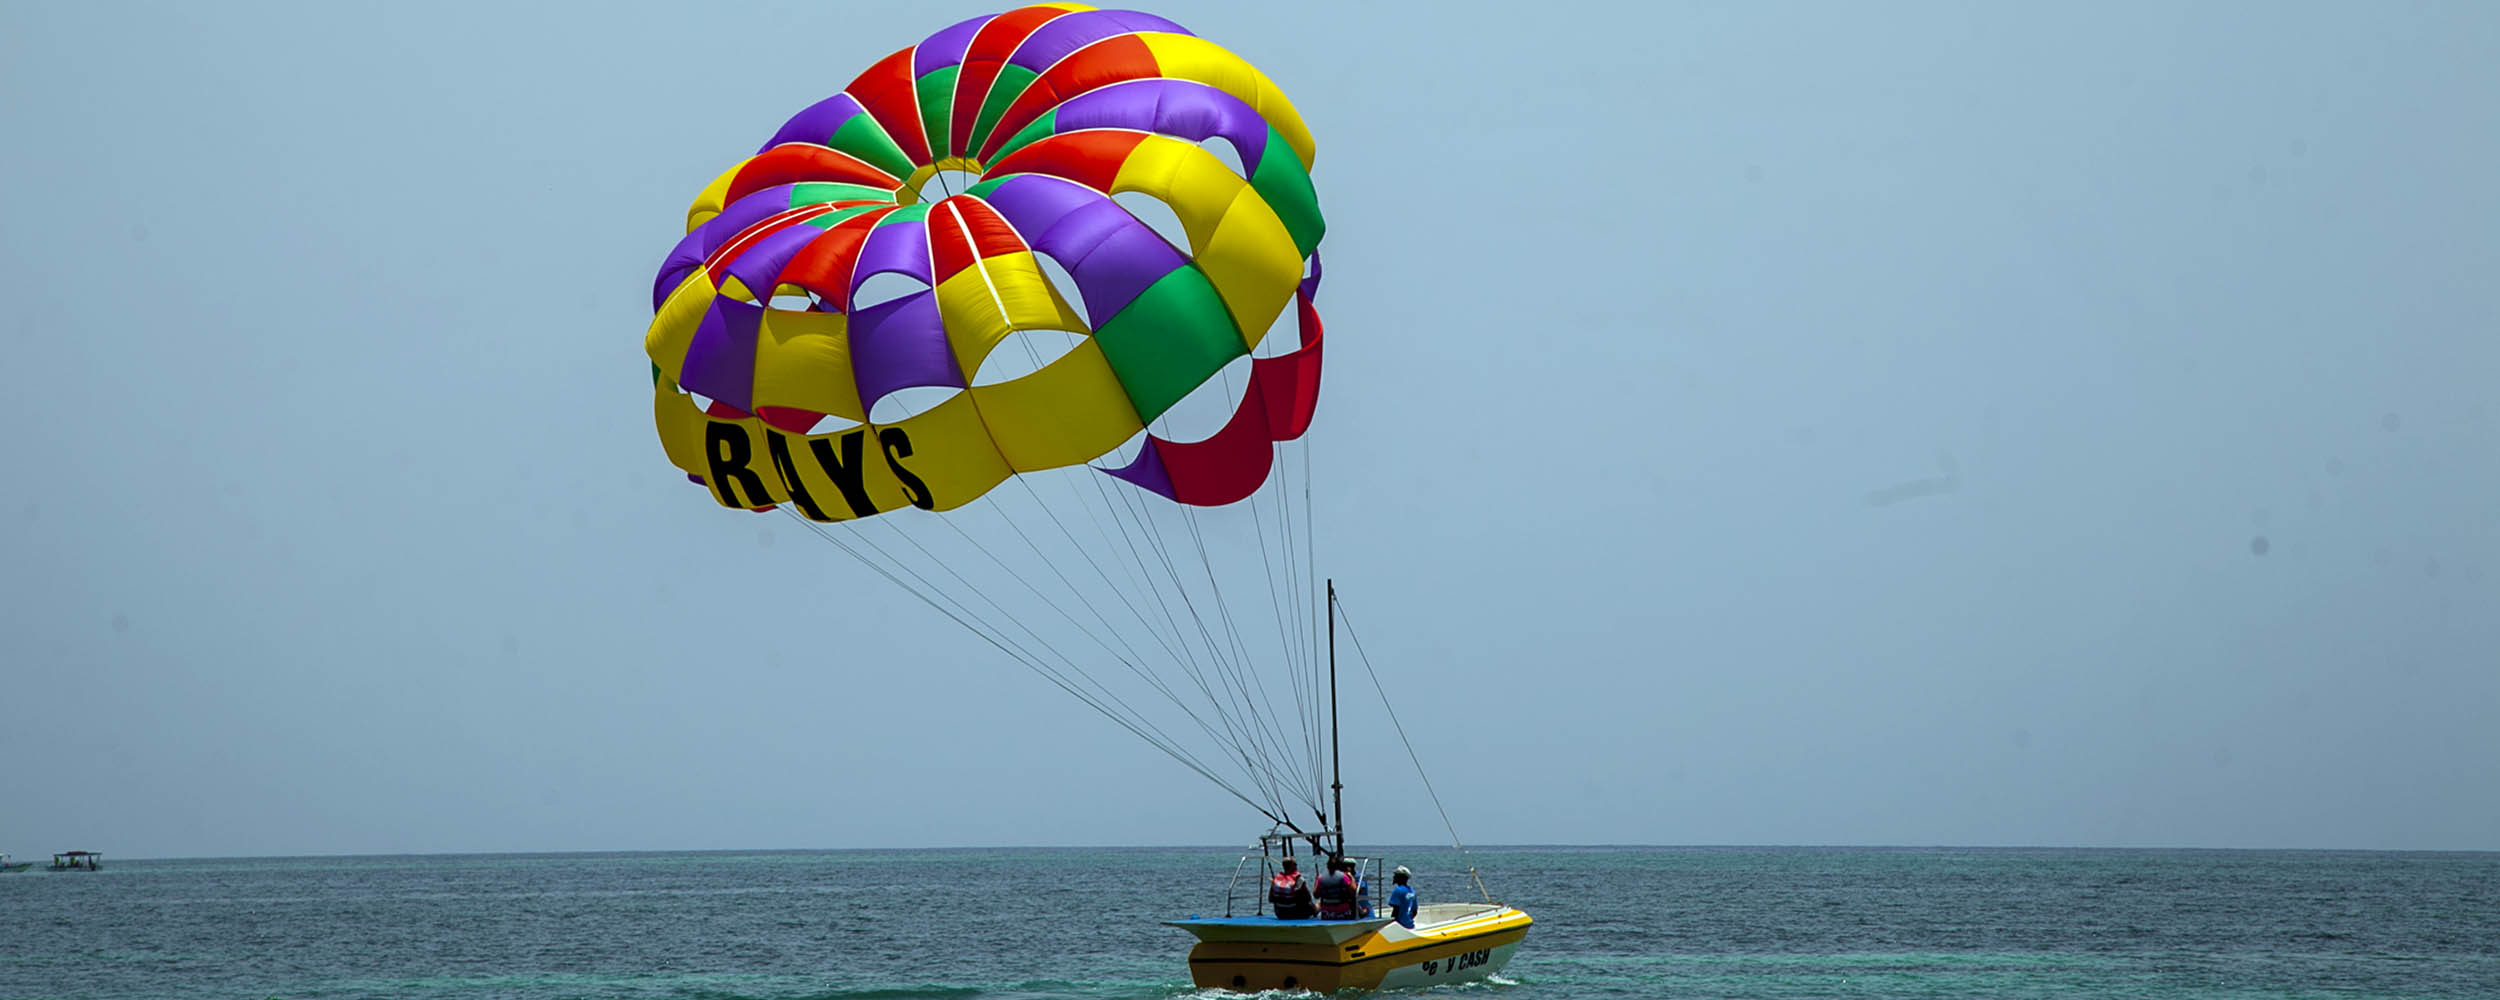 Ray's Water Sports - Fly With Ray's - Negril Beach, Negril Jamaica